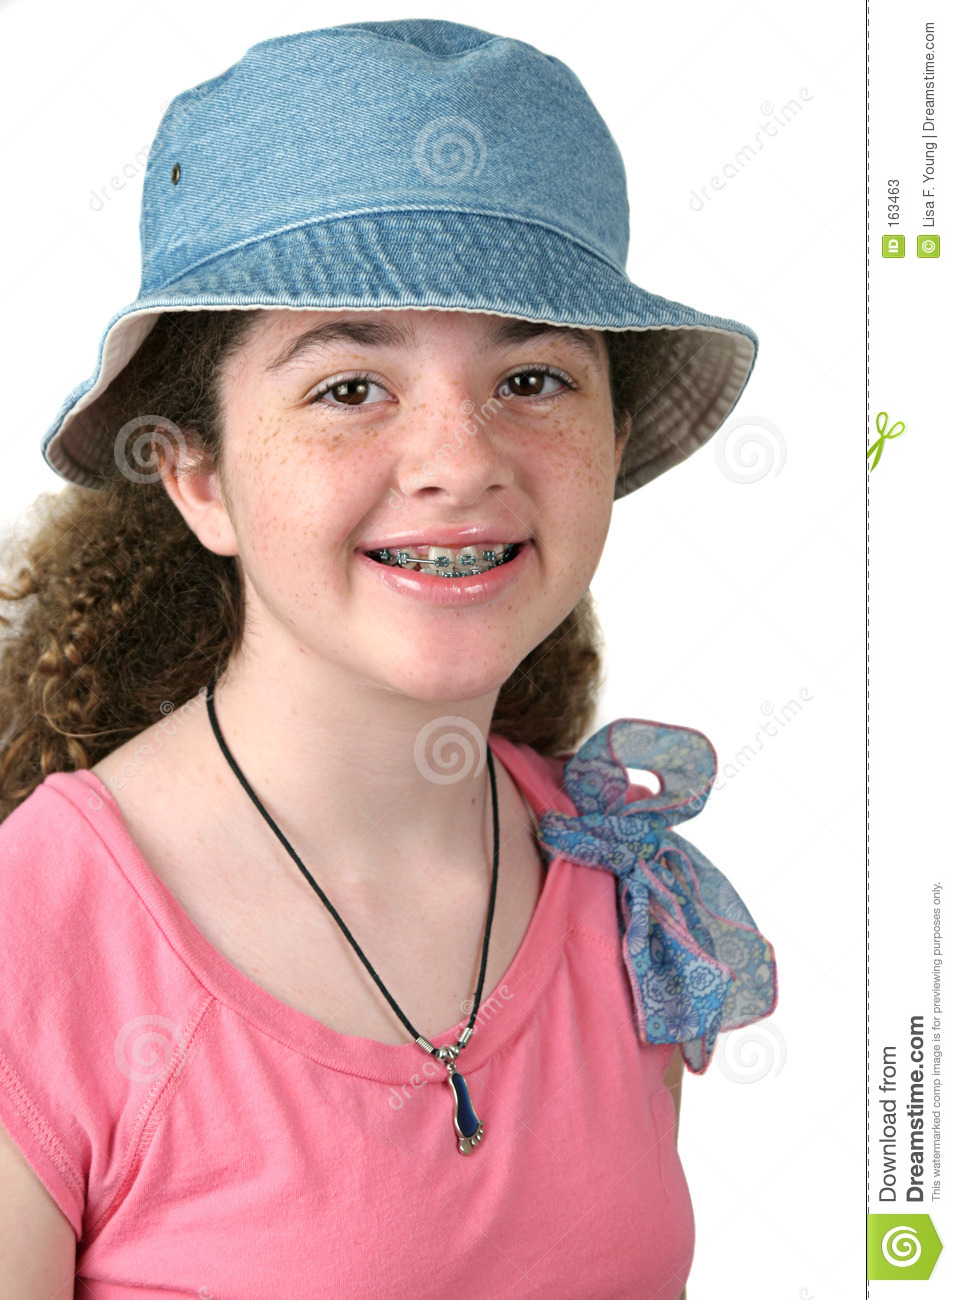 Cute Girl With Braces